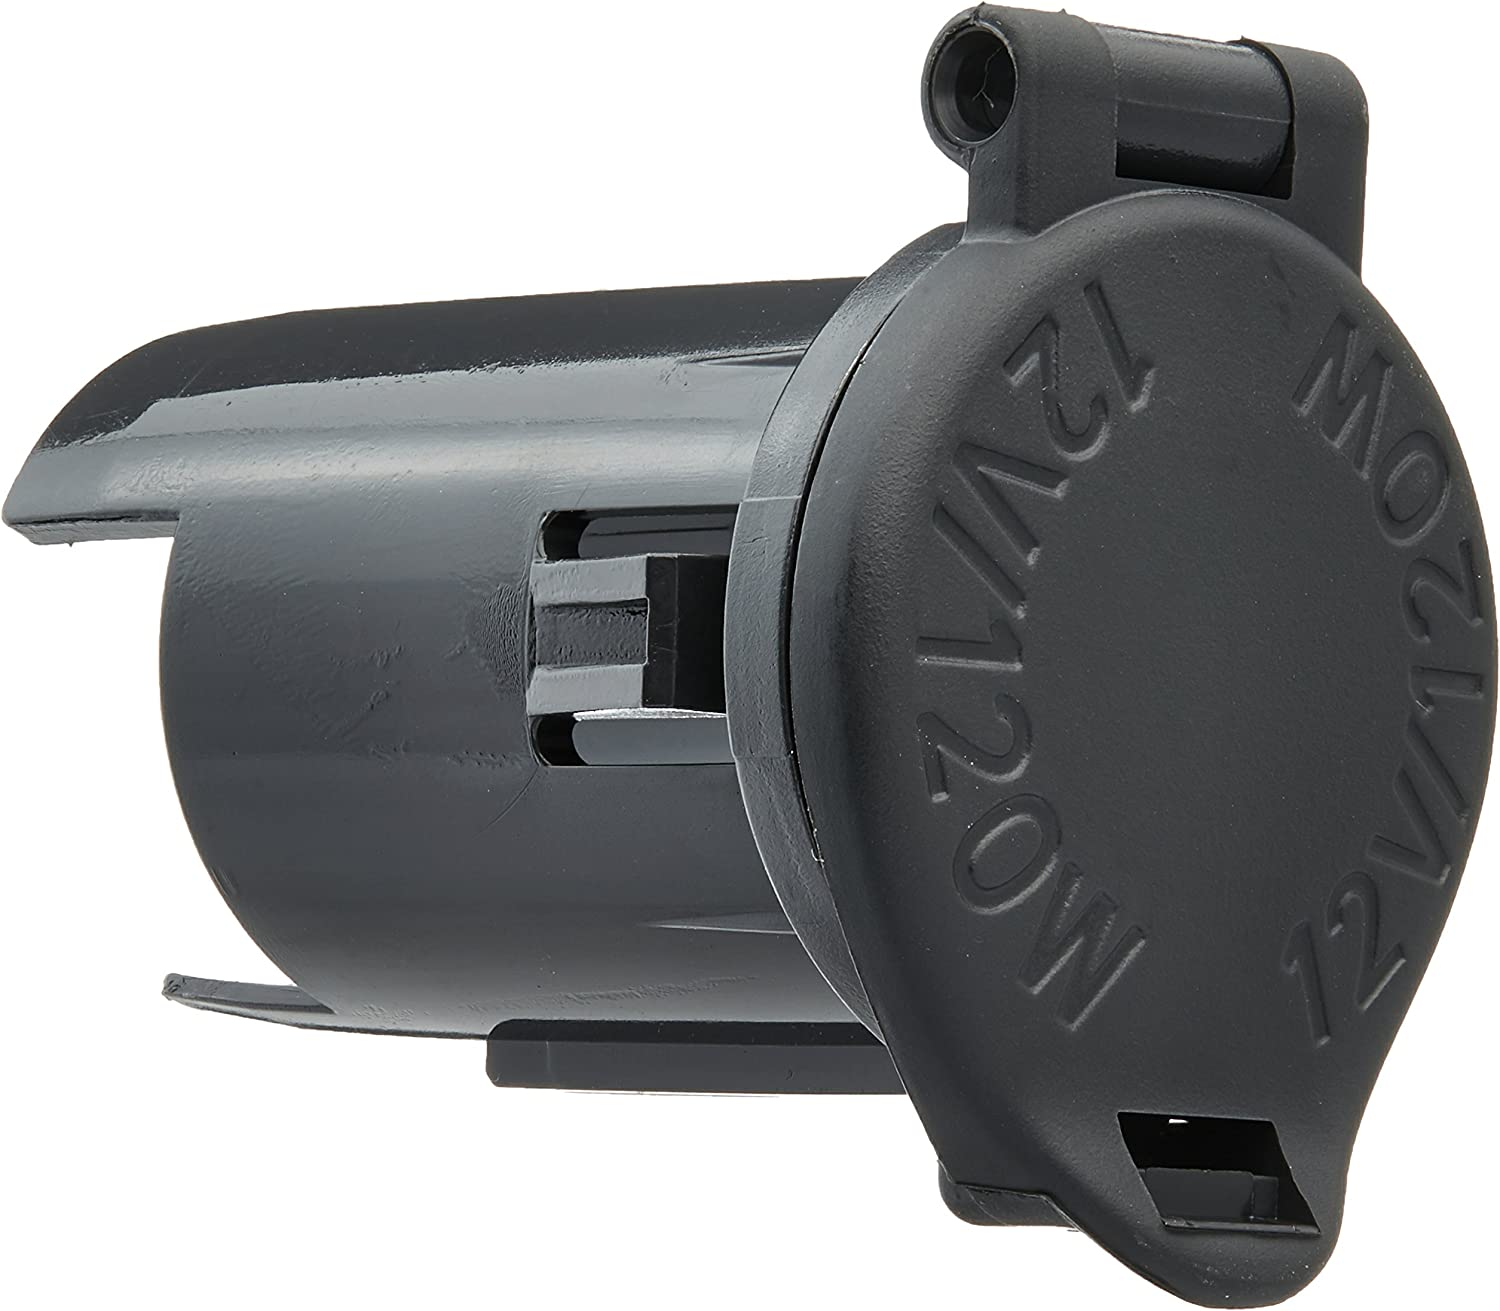 Lighting & Electrical Toyota 85535-60100-B1 Power Outlet Socket ...